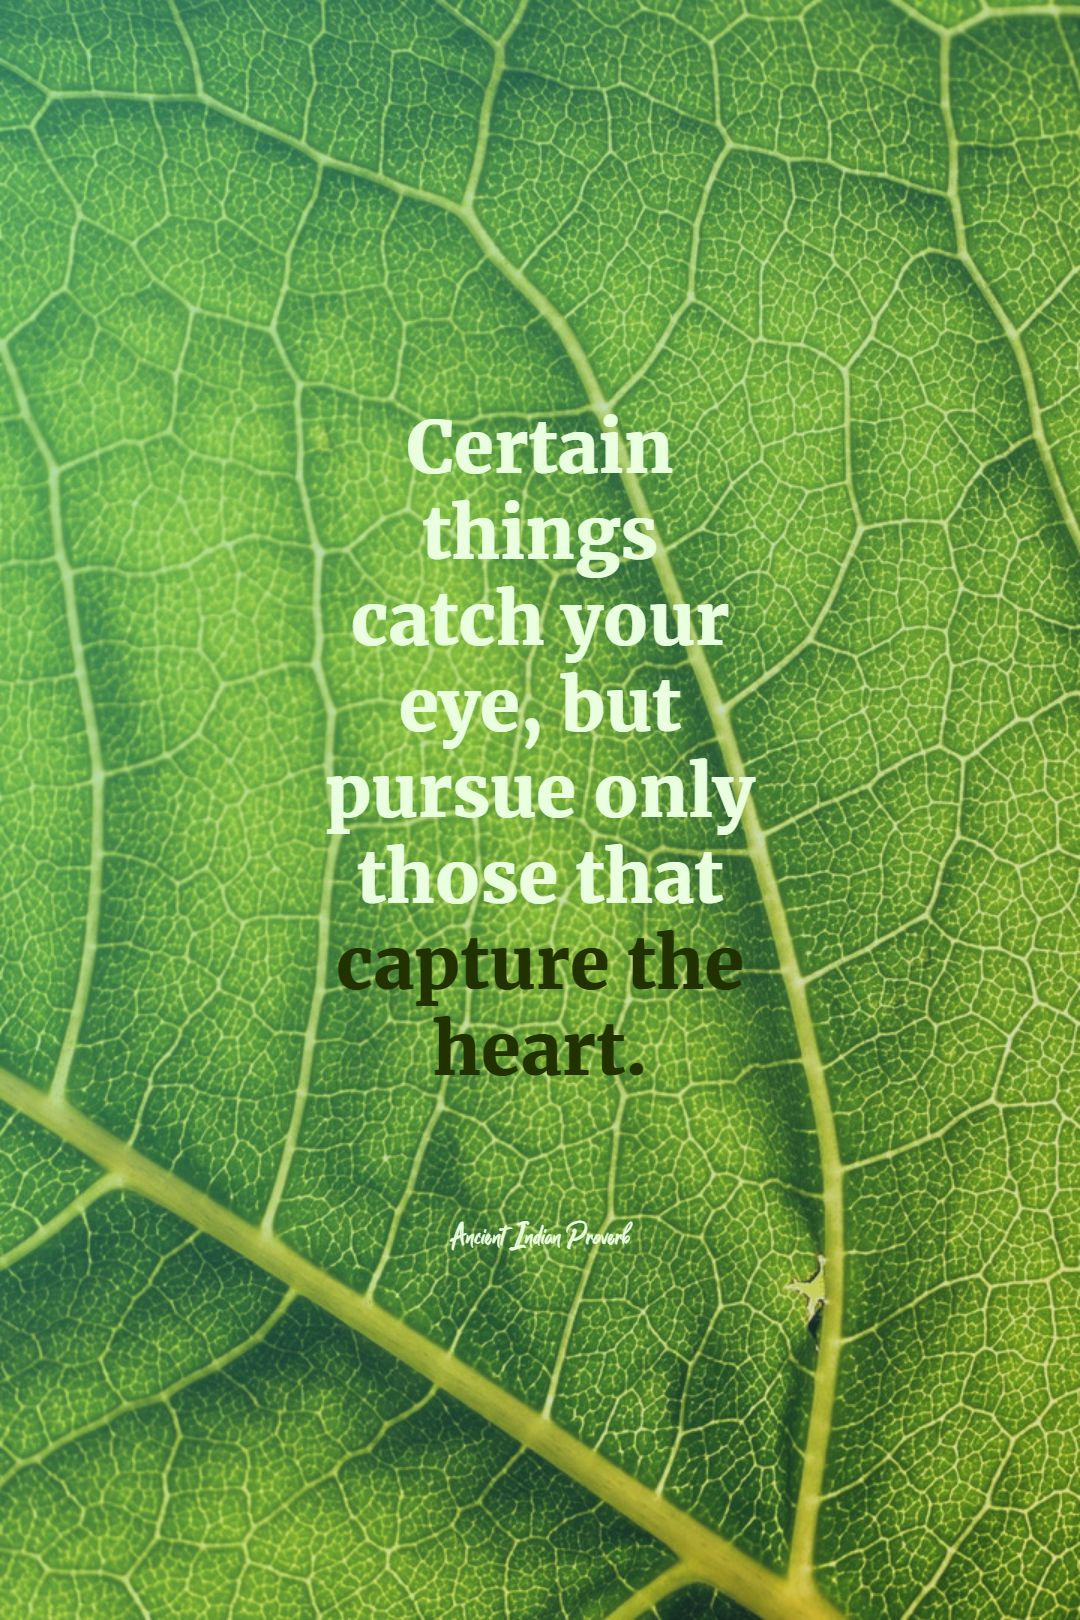 Quotes image of Certain things catch your eye, but pursue only those that capture the heart.